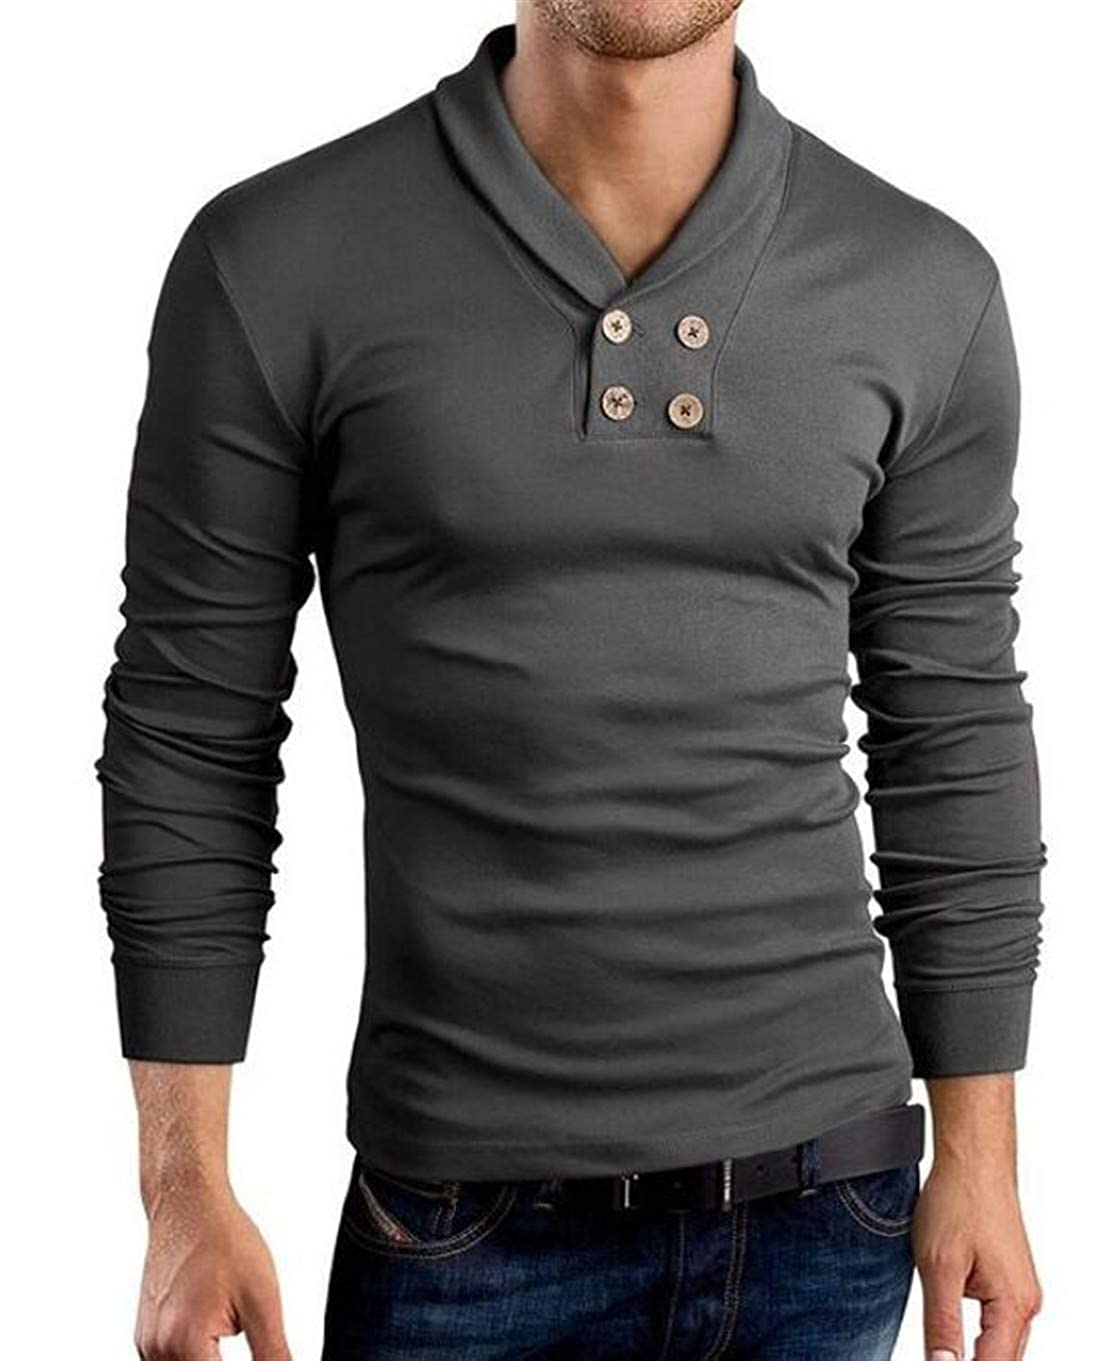 BU2H Men Long Sleeve Double-Breasted V-Neck Comfort Soft Skinny Top Tshirts